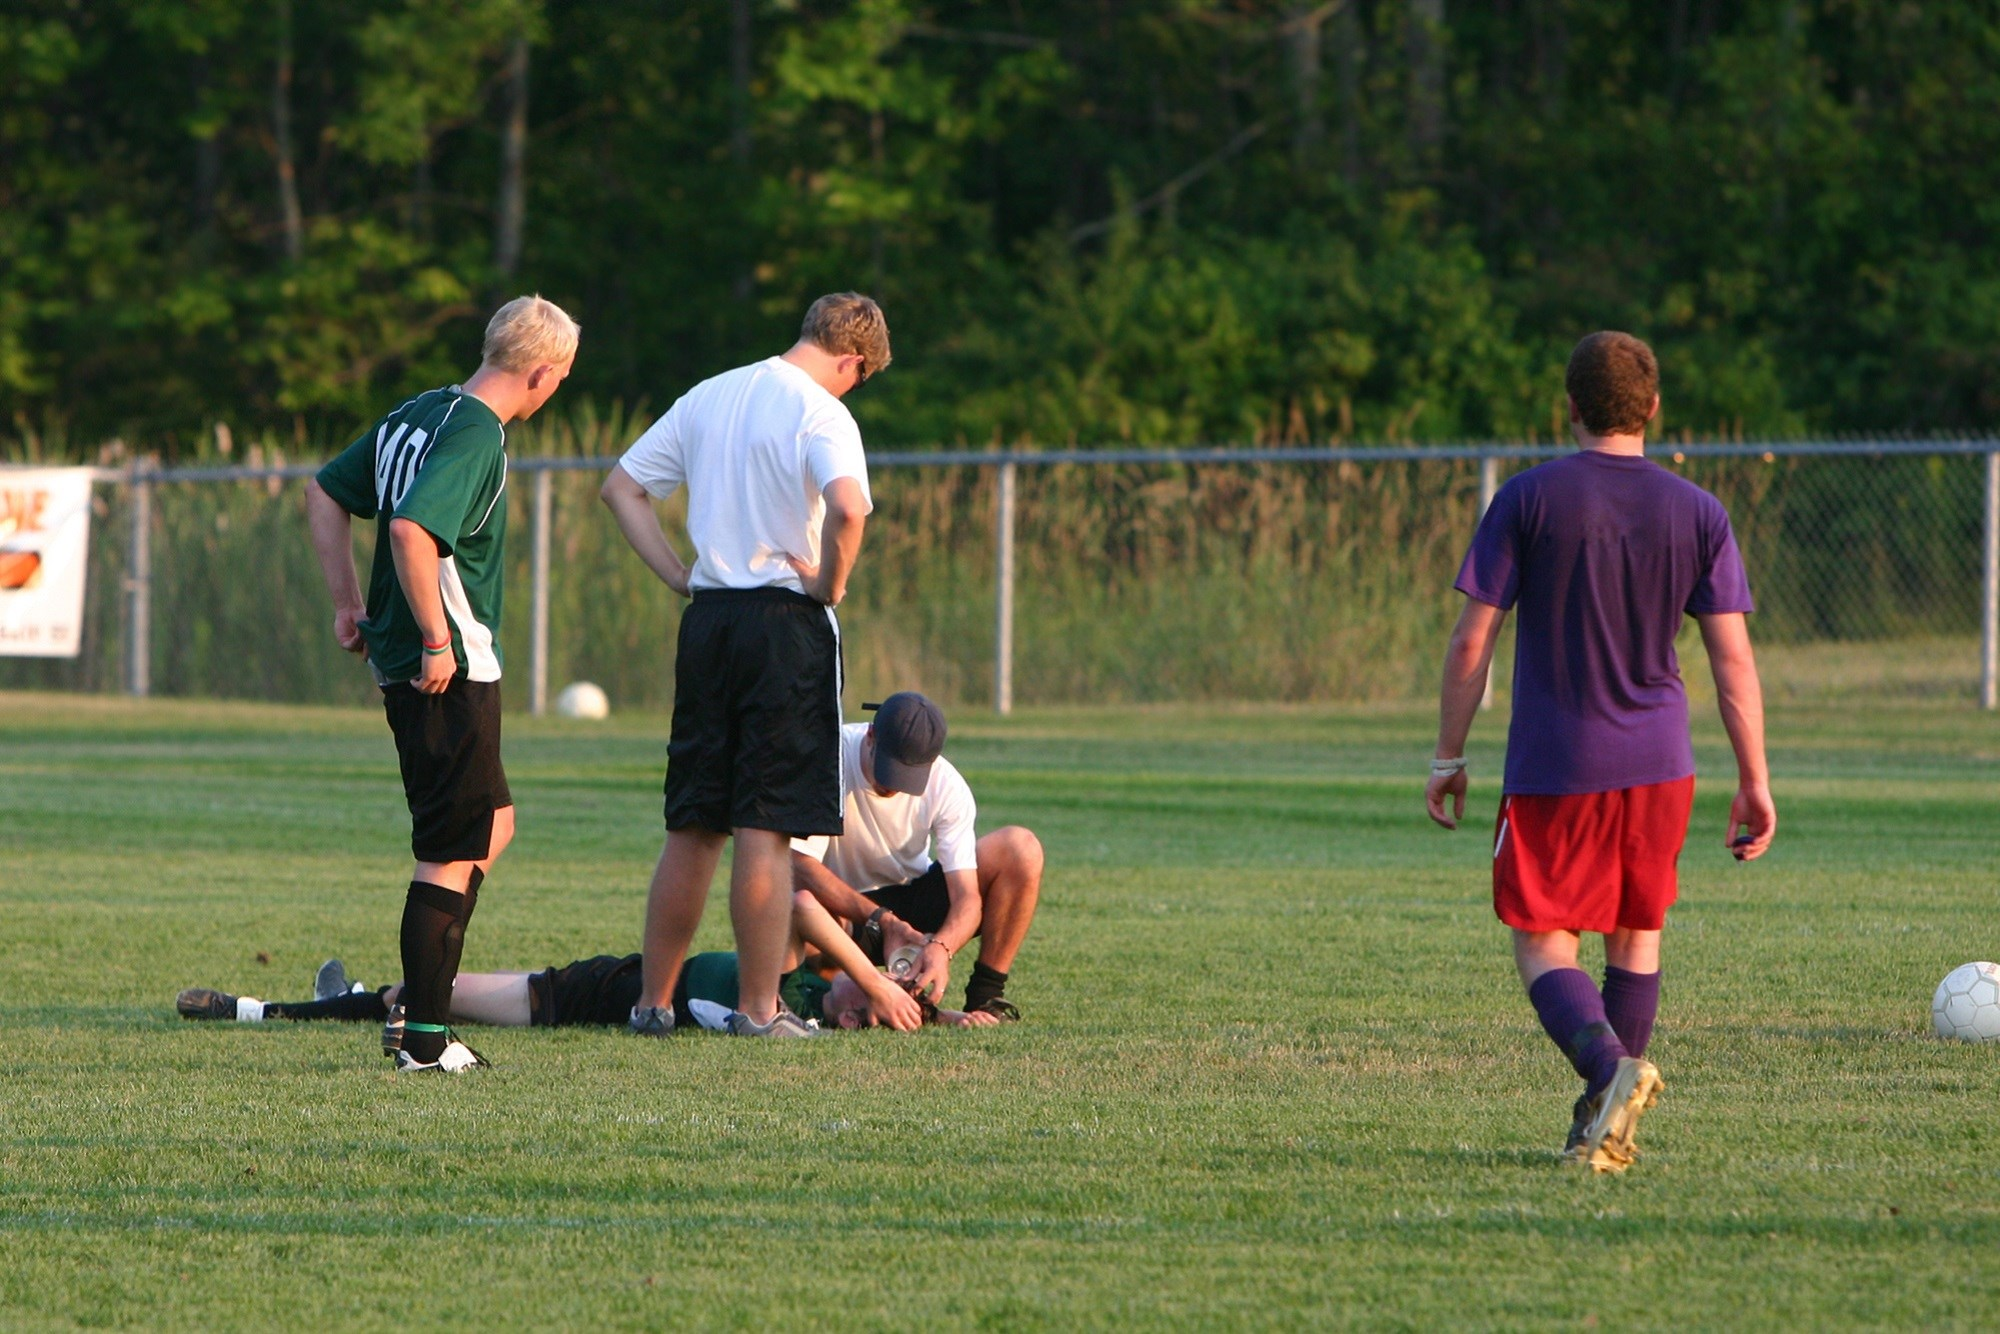 Following World Cup, FIFA Must Make Concussion Treatment a Priority